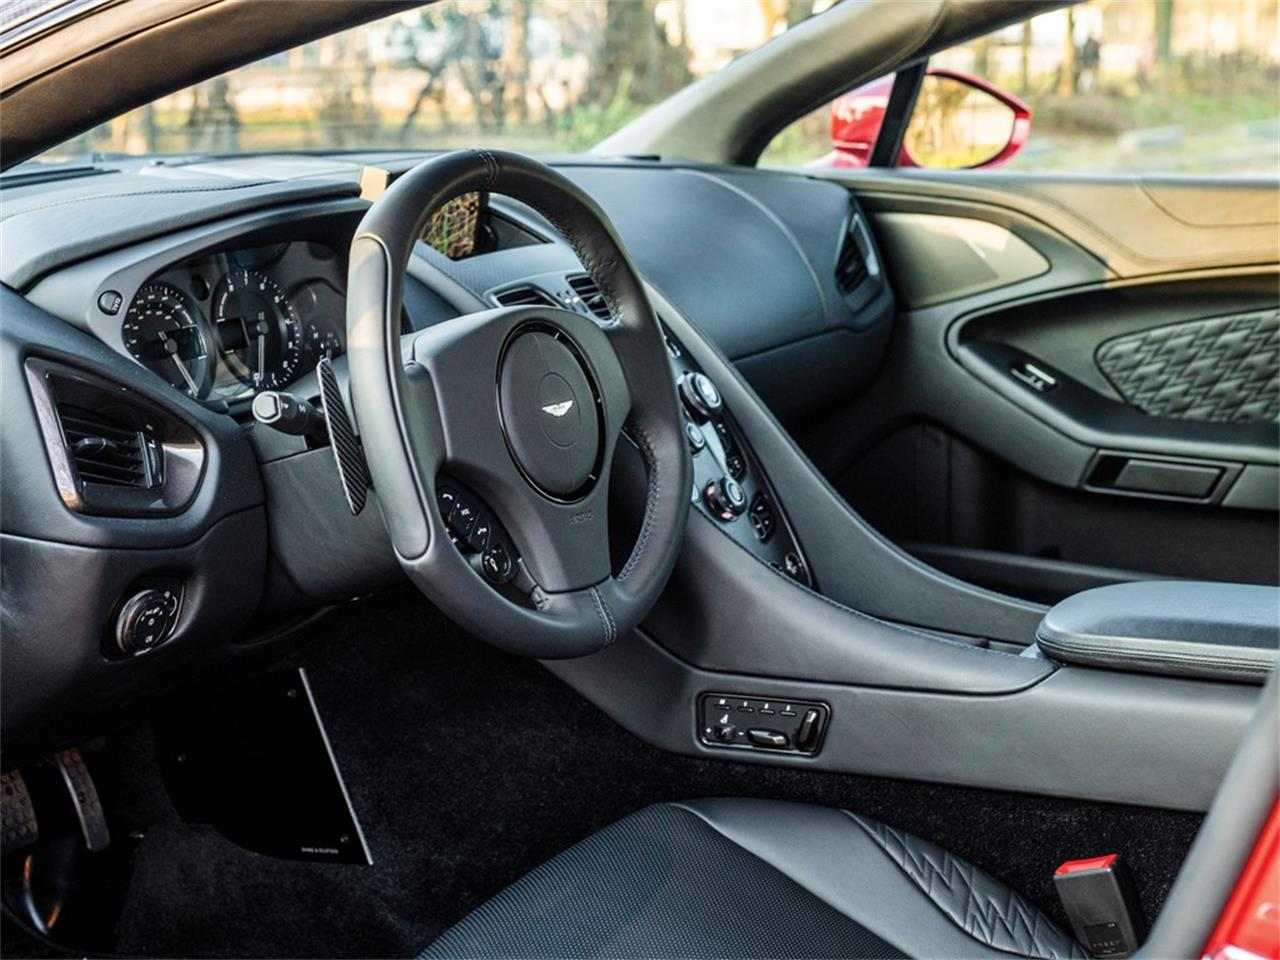 2019 Aston Martin Vanquish for sale in Cernobbio, Other – photo 10